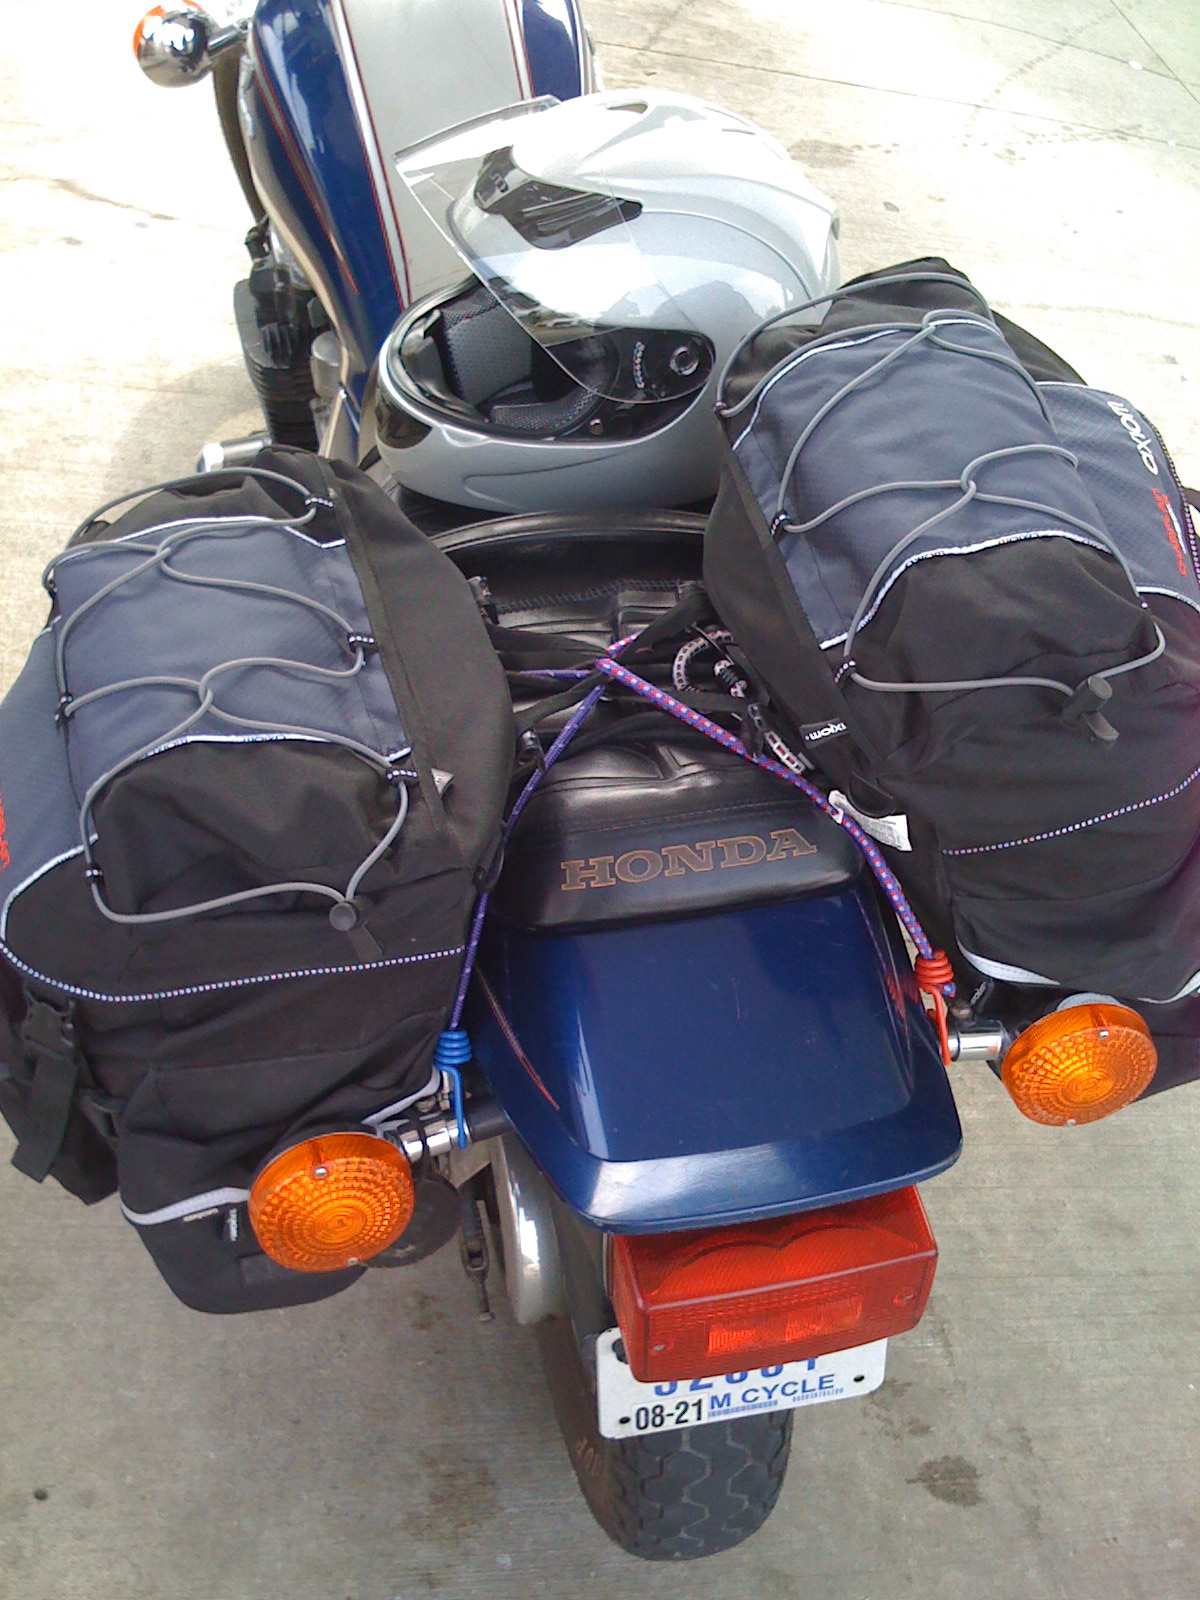 The Panniers